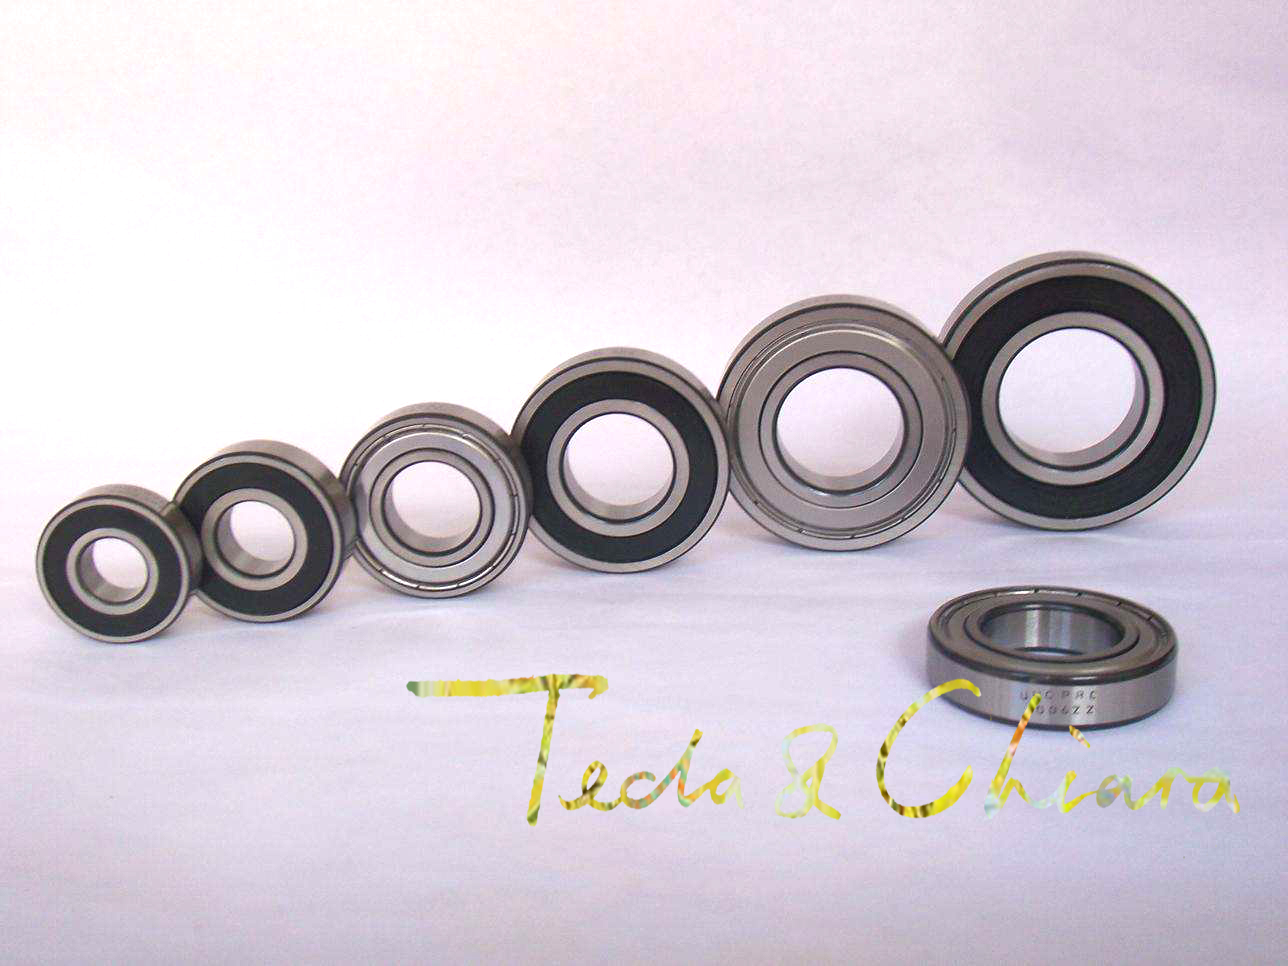 6200 6200ZZ 6200RS 6200-2Z 6200Z 6200-2RS ZZ RS RZ 2RZ Deep Groove Ball Bearings 10 x 30 x 9mm High Quality free shipping 25x47x12mm deep groove ball bearings 6005 zz 2z 6005zz bearing 6005zz 6005 2rs